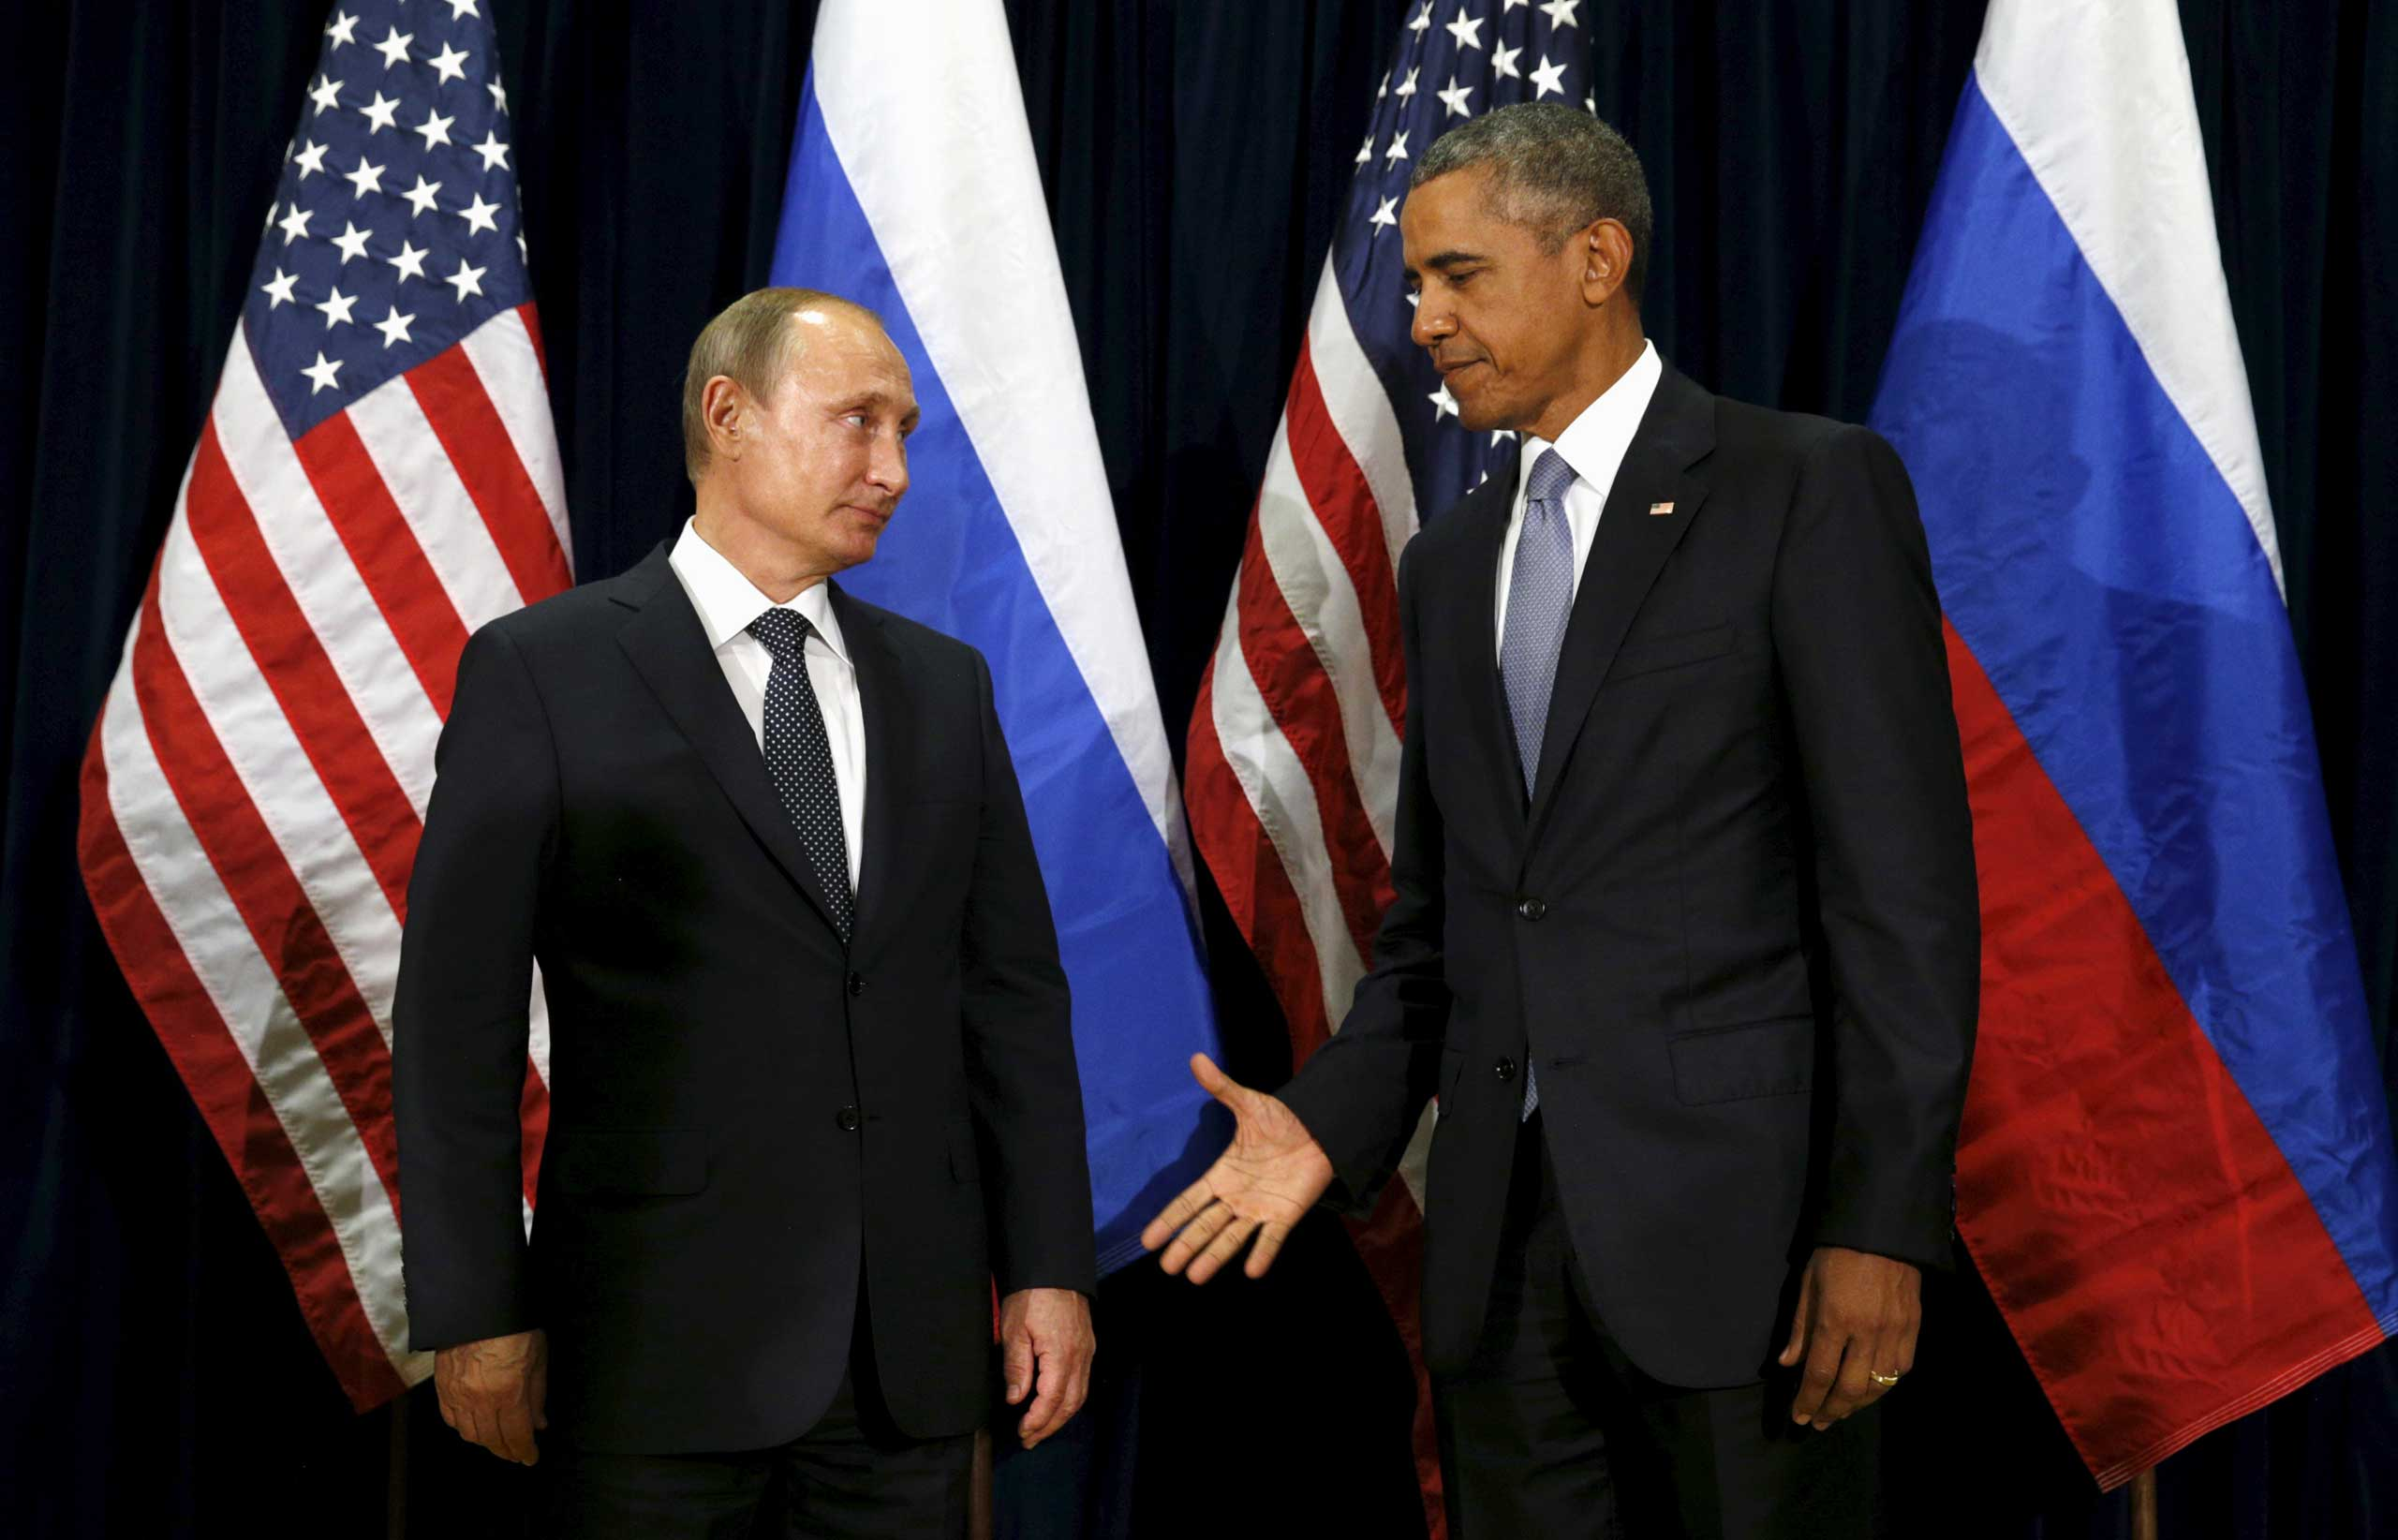 U.S. President Barack Obama extends his hand to Russian President Vladimir Putin during their meeting at the United Nations General Assembly in New York, N.Y. Sept. 28, 2015.